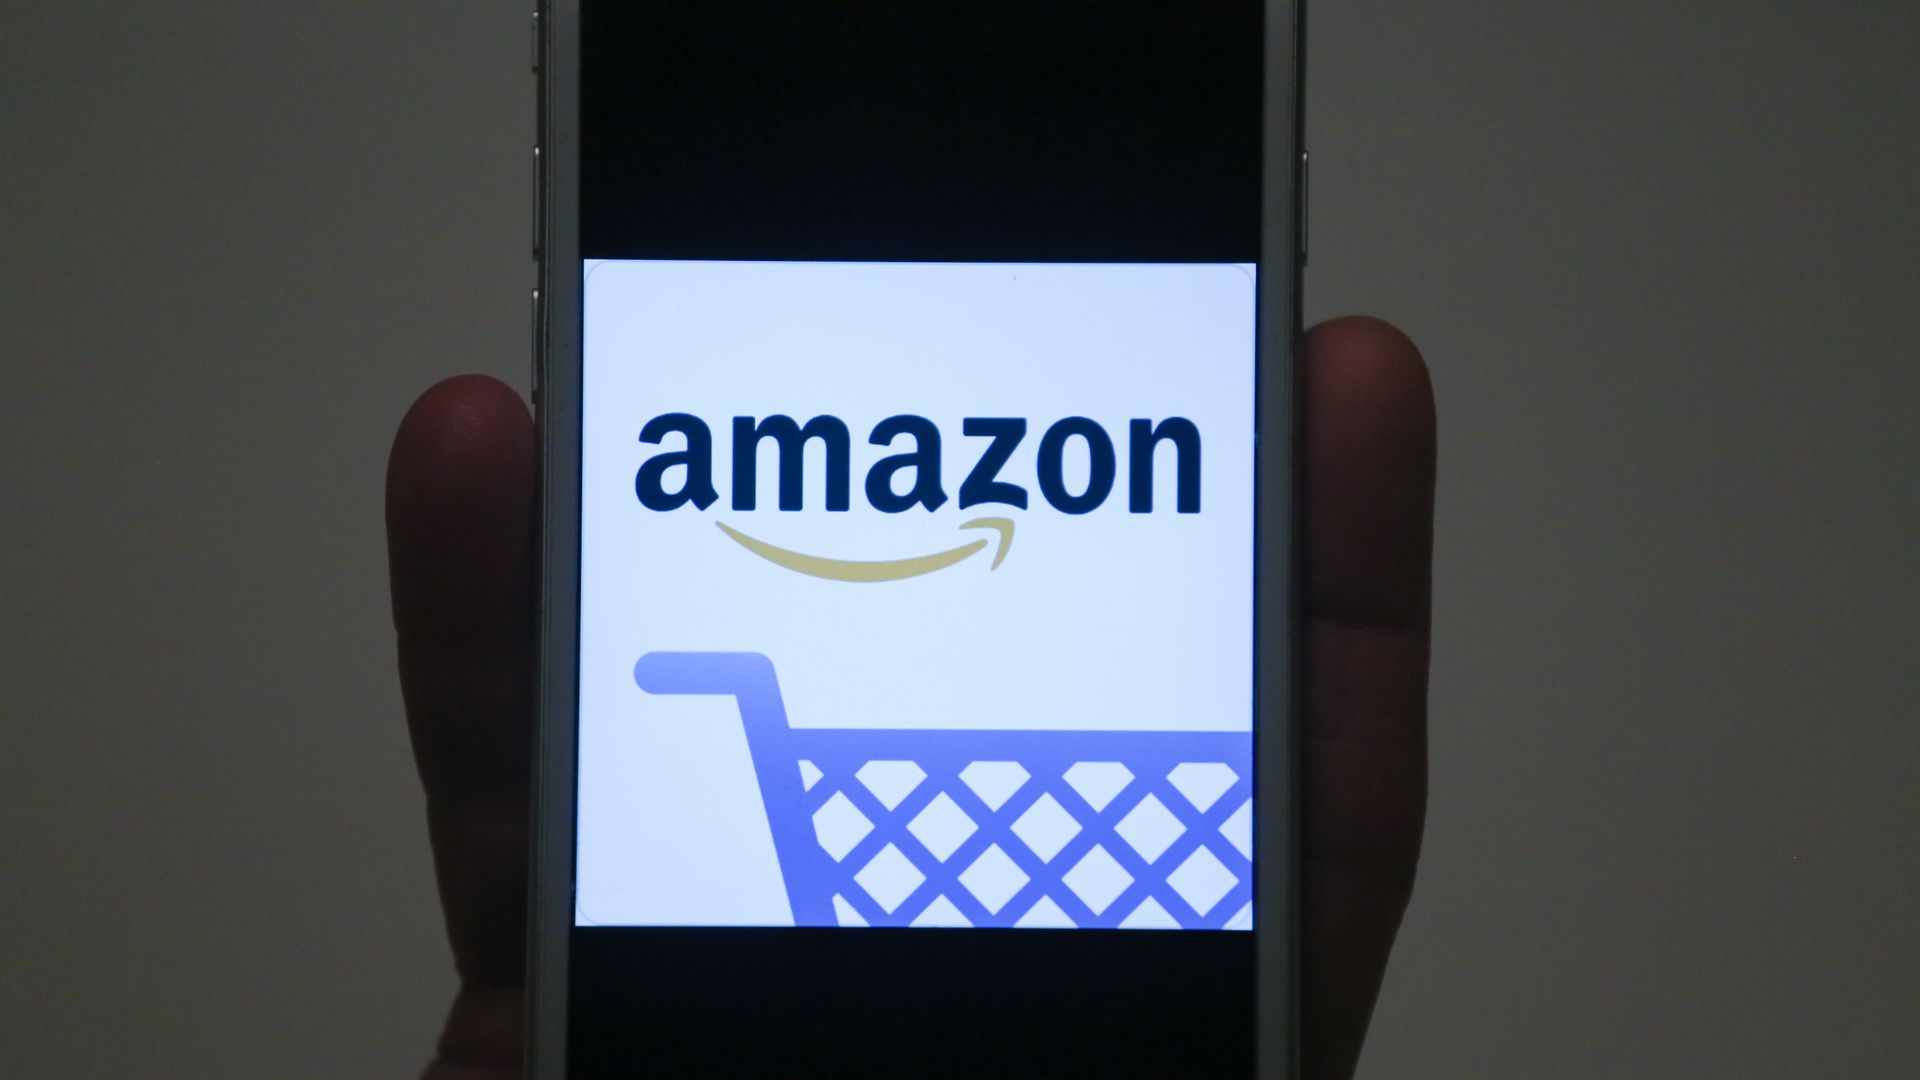 Amazon logo on a phone